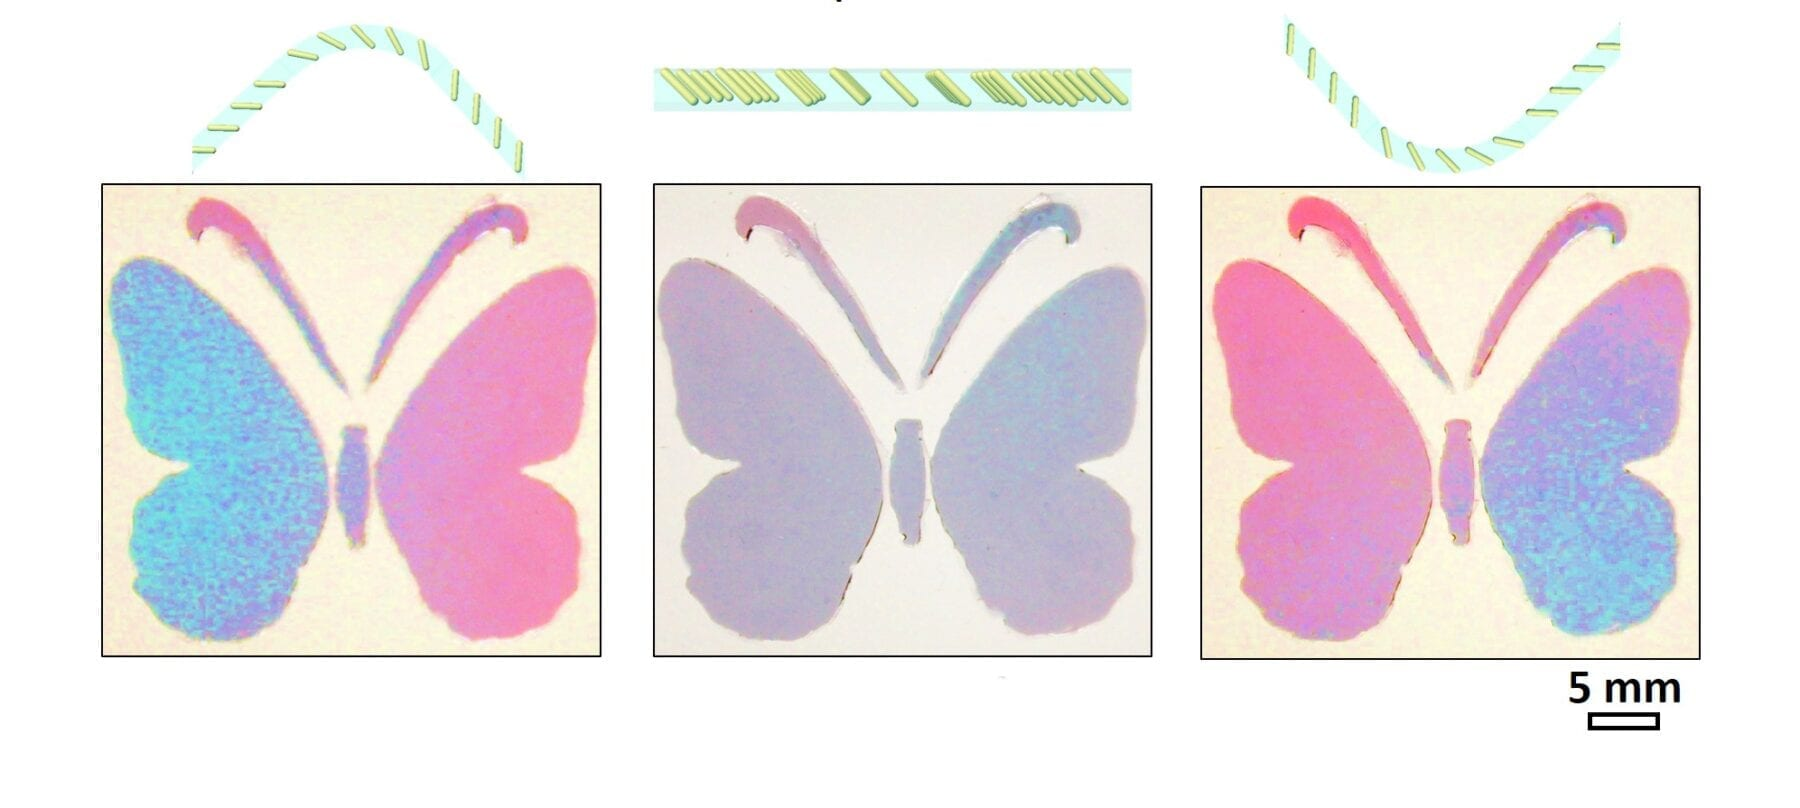 New material with programmable colorimetric responses can behave more like animal skins.